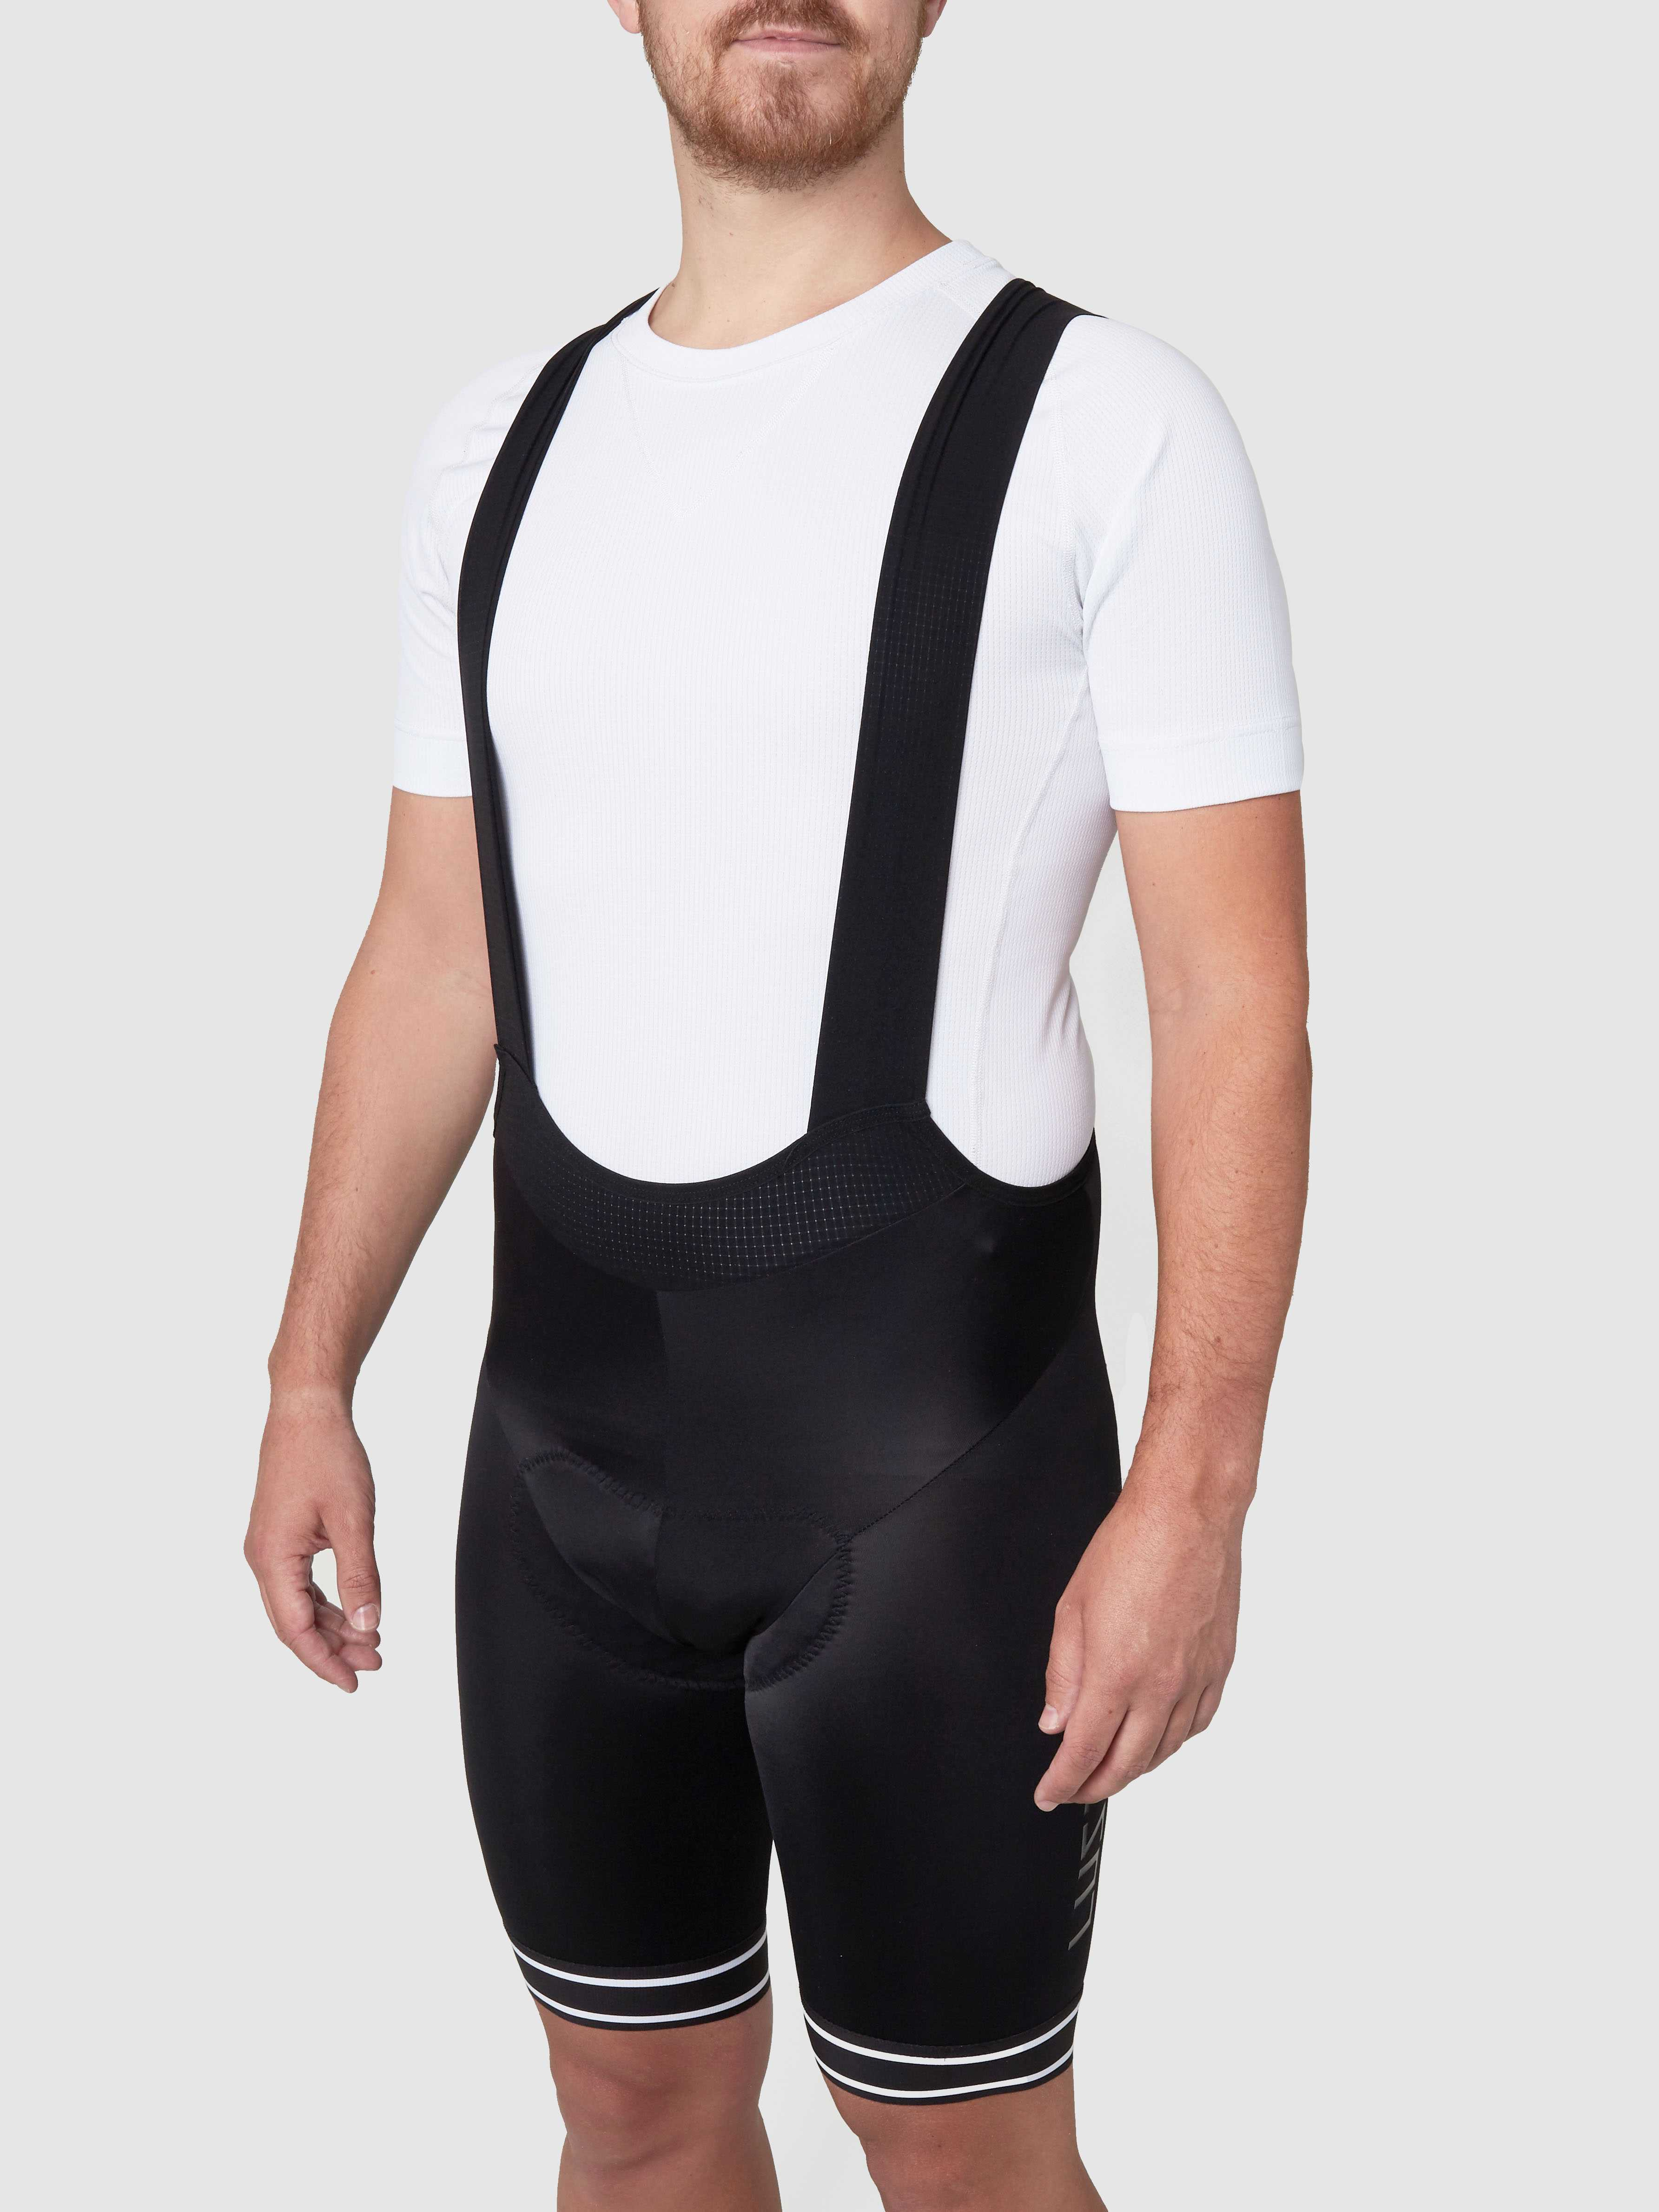 Lust_For_Cycling_Suit_Men